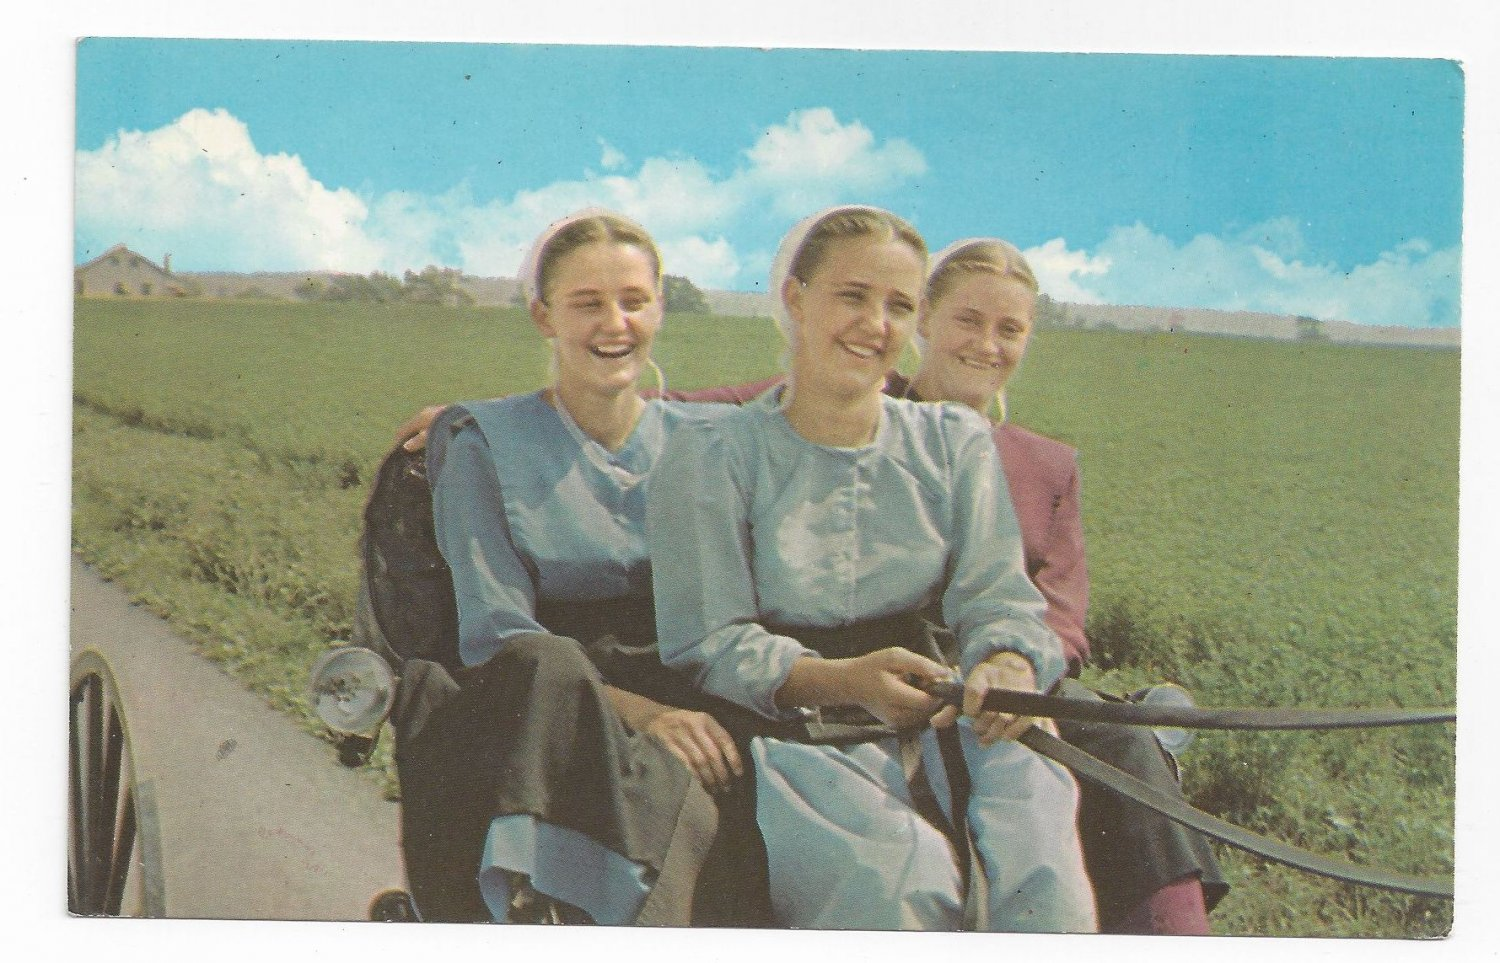 Amish Postcard Mennonite Girls Lancaster Co PA Traditional Clothing ...: ecrater.com/p/18028501/amish-postcard-mennonite-girls-lancaster